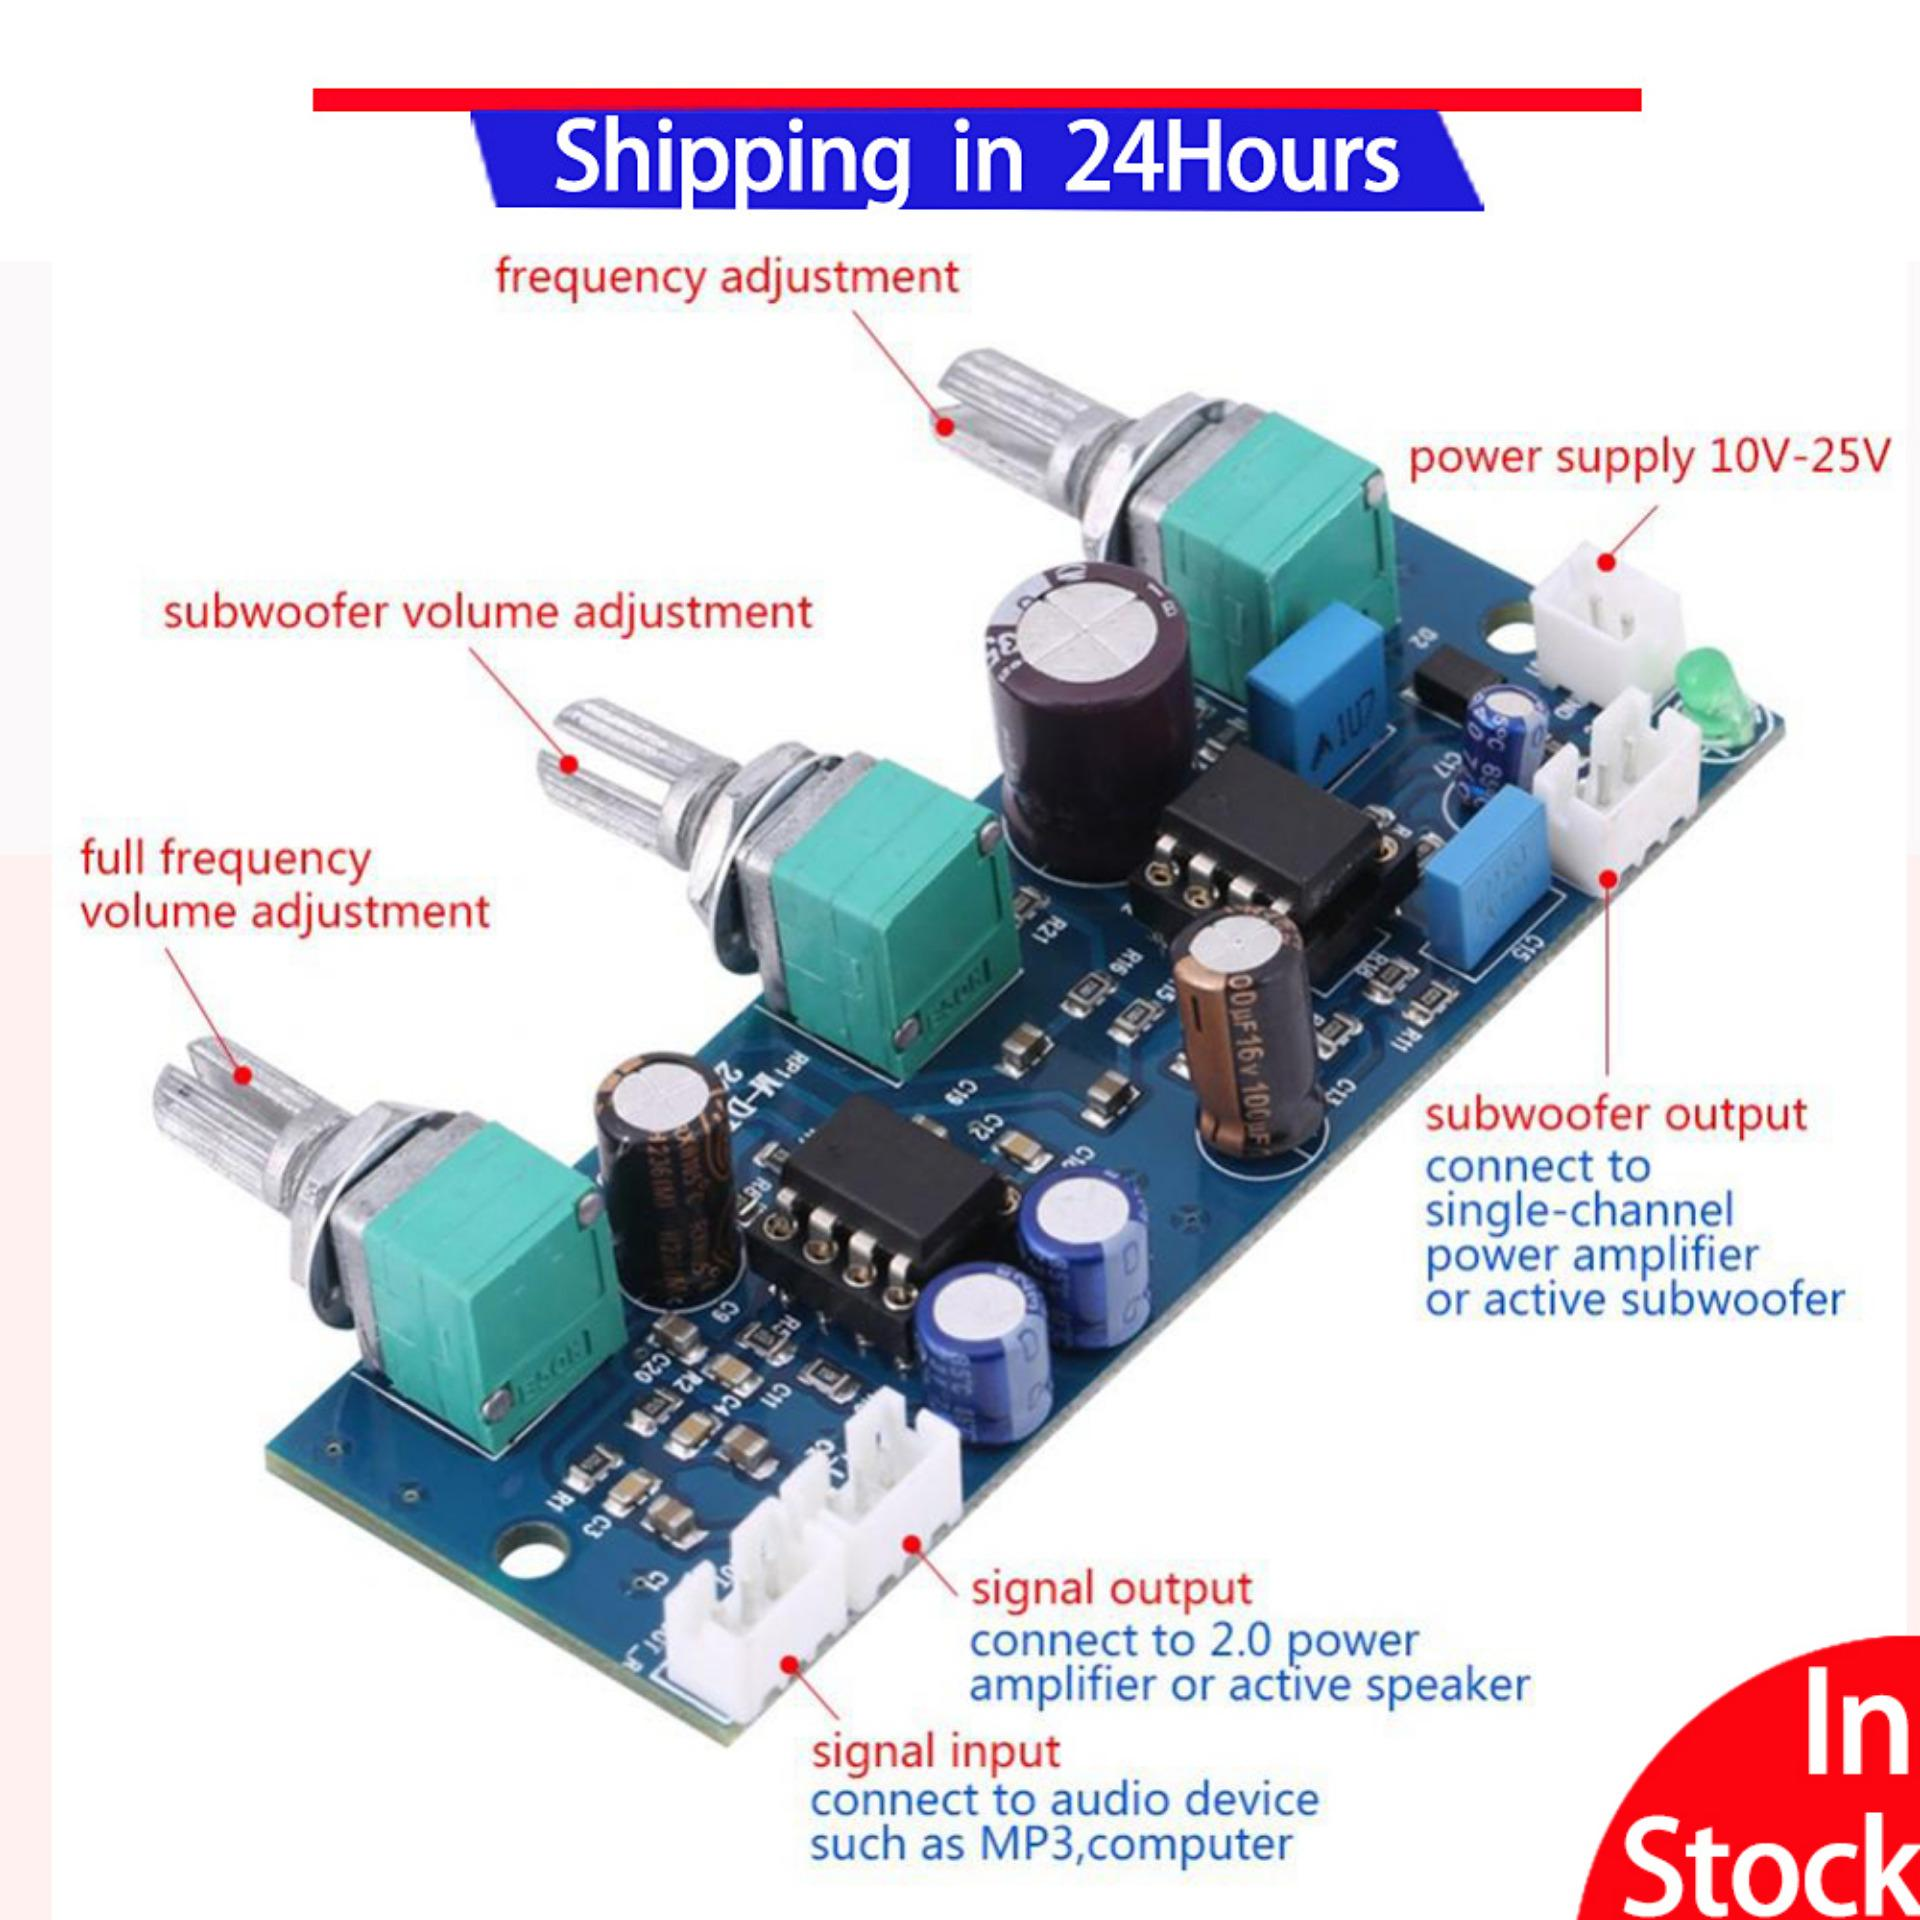 Electrical Equipment For Sale Electricals Prices Brands Review Time Integrated Electronic Doorbell Without Audio Transformer 1pc Low Pass Filter Pre Amp Amplifier Board 21 Channel Subwoofer Intl